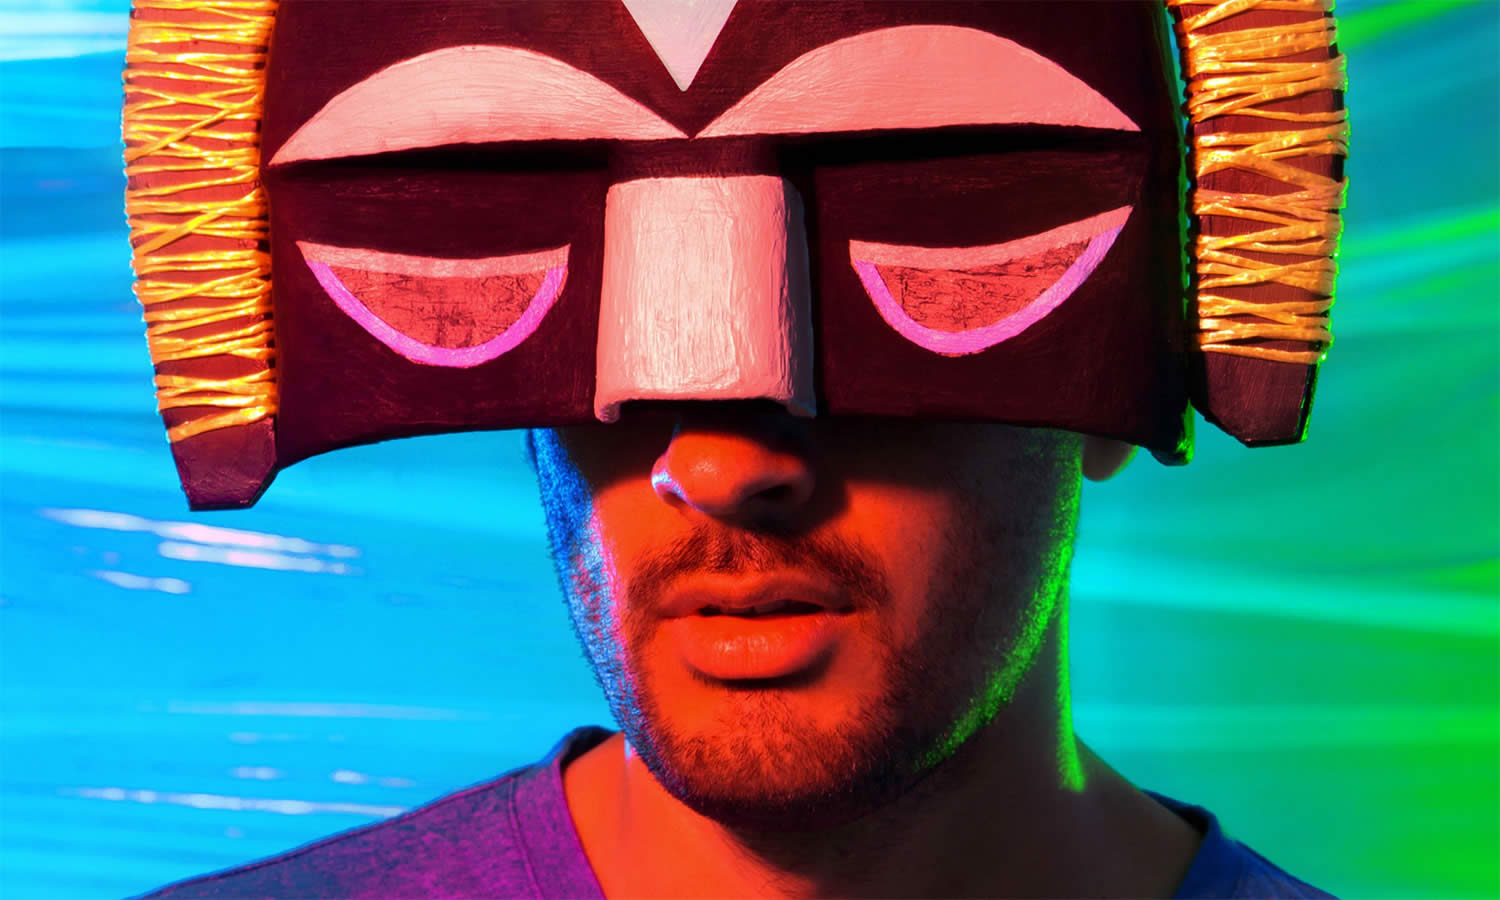 SBTRKT wearing a ceremonial mask